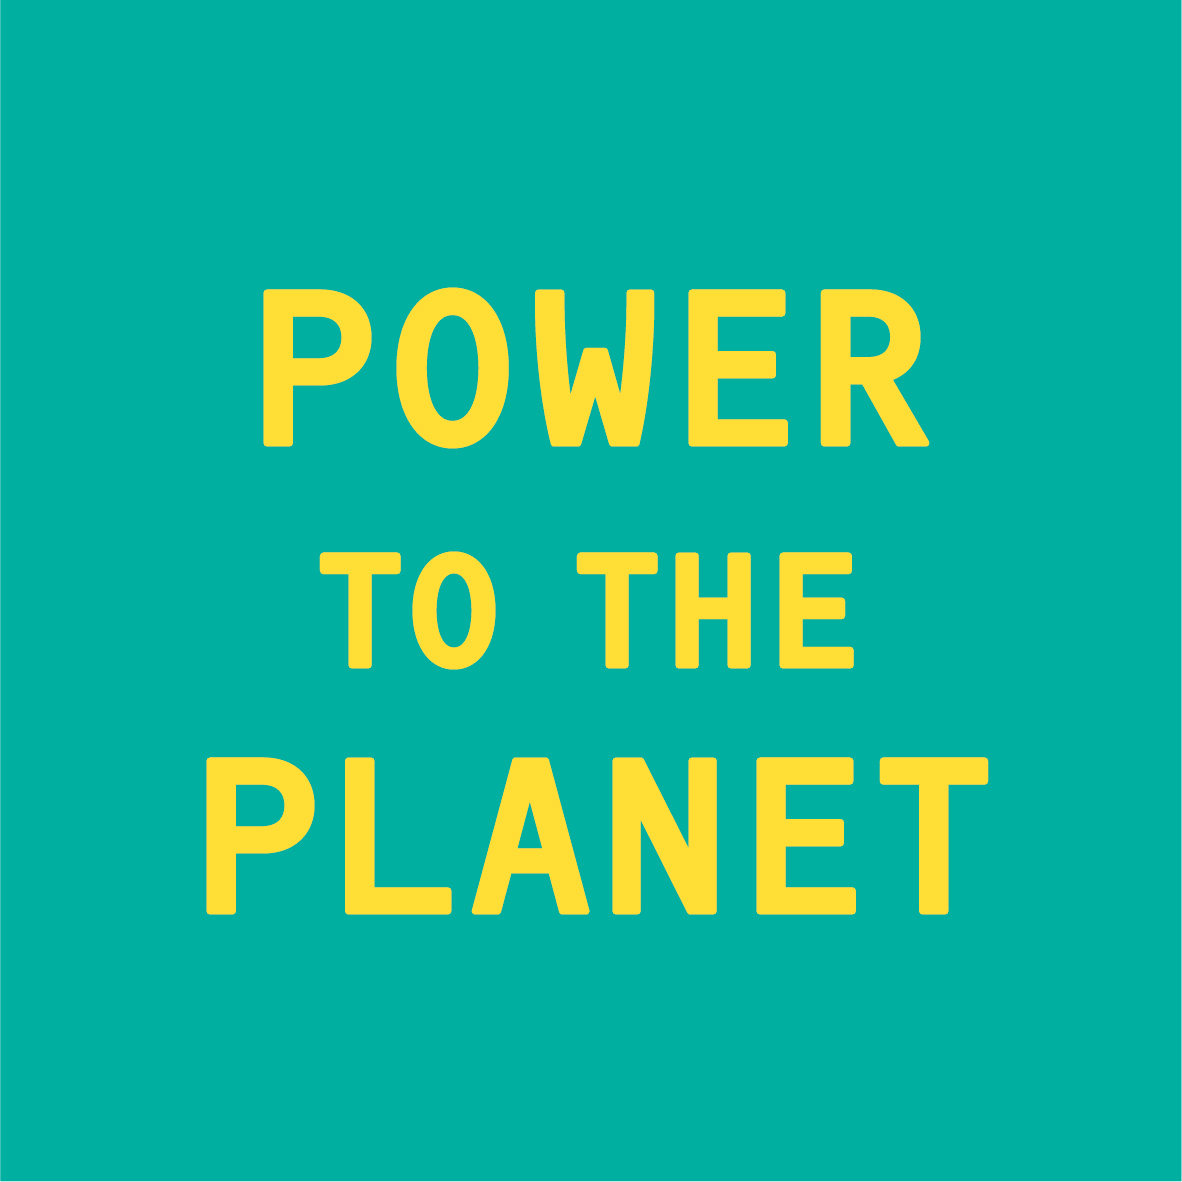 Power to the Planet.jpg